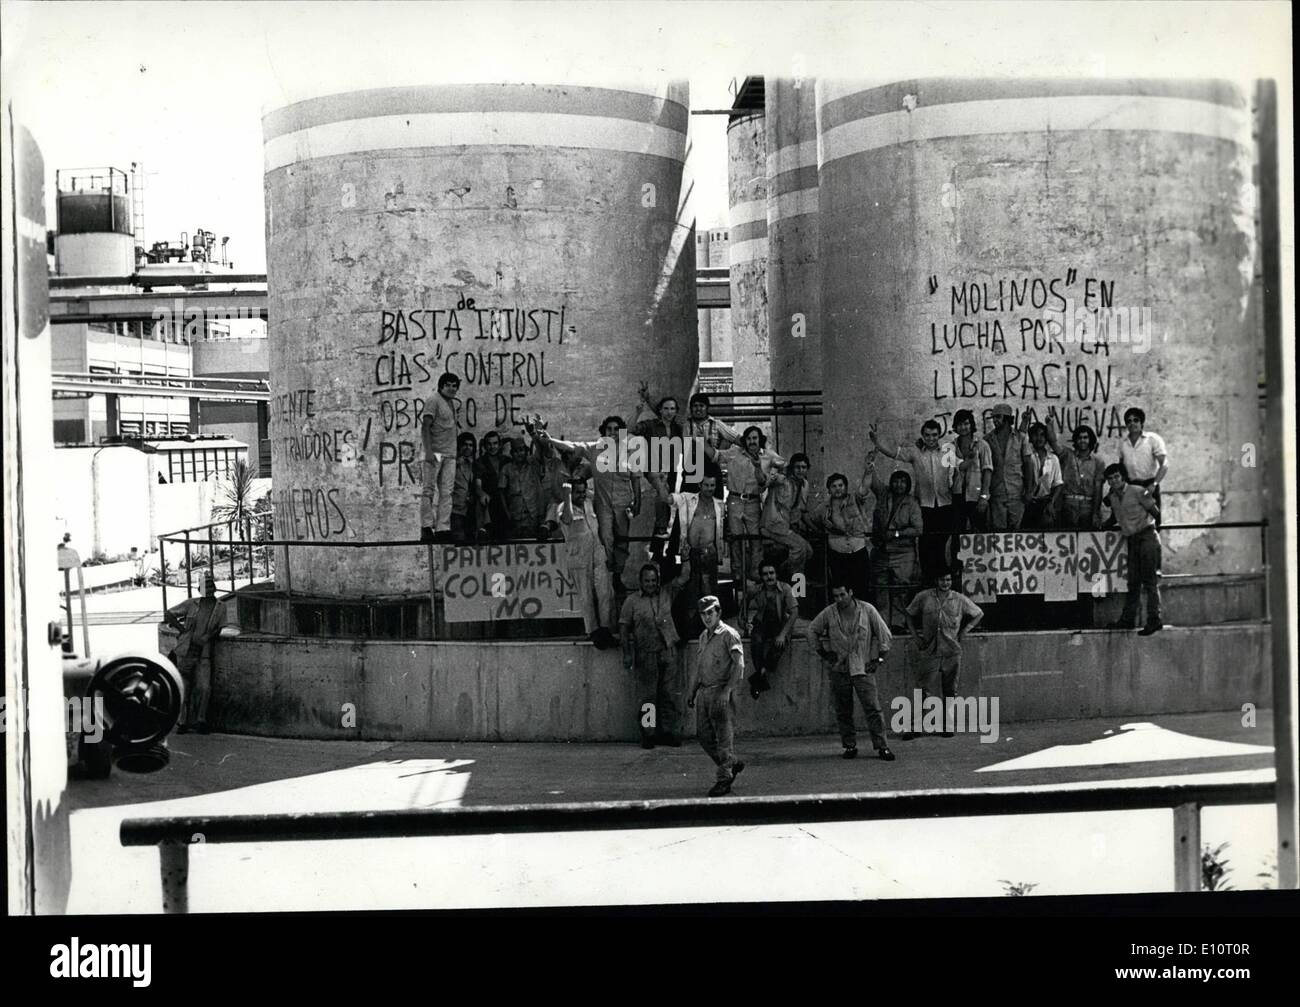 Jan. 01, 1974 - Photo shows Workers outside the Avellaneda factory, down town Buenos Aires, demonstrate for better working conditions versus The factory produces  oil. Argentina Has A Lot Of Problems: Beside the extronist activities there are continuing the workers agitation who many times occupy the factory where they are working due to the un-executing of laboral disposition - Stock Image